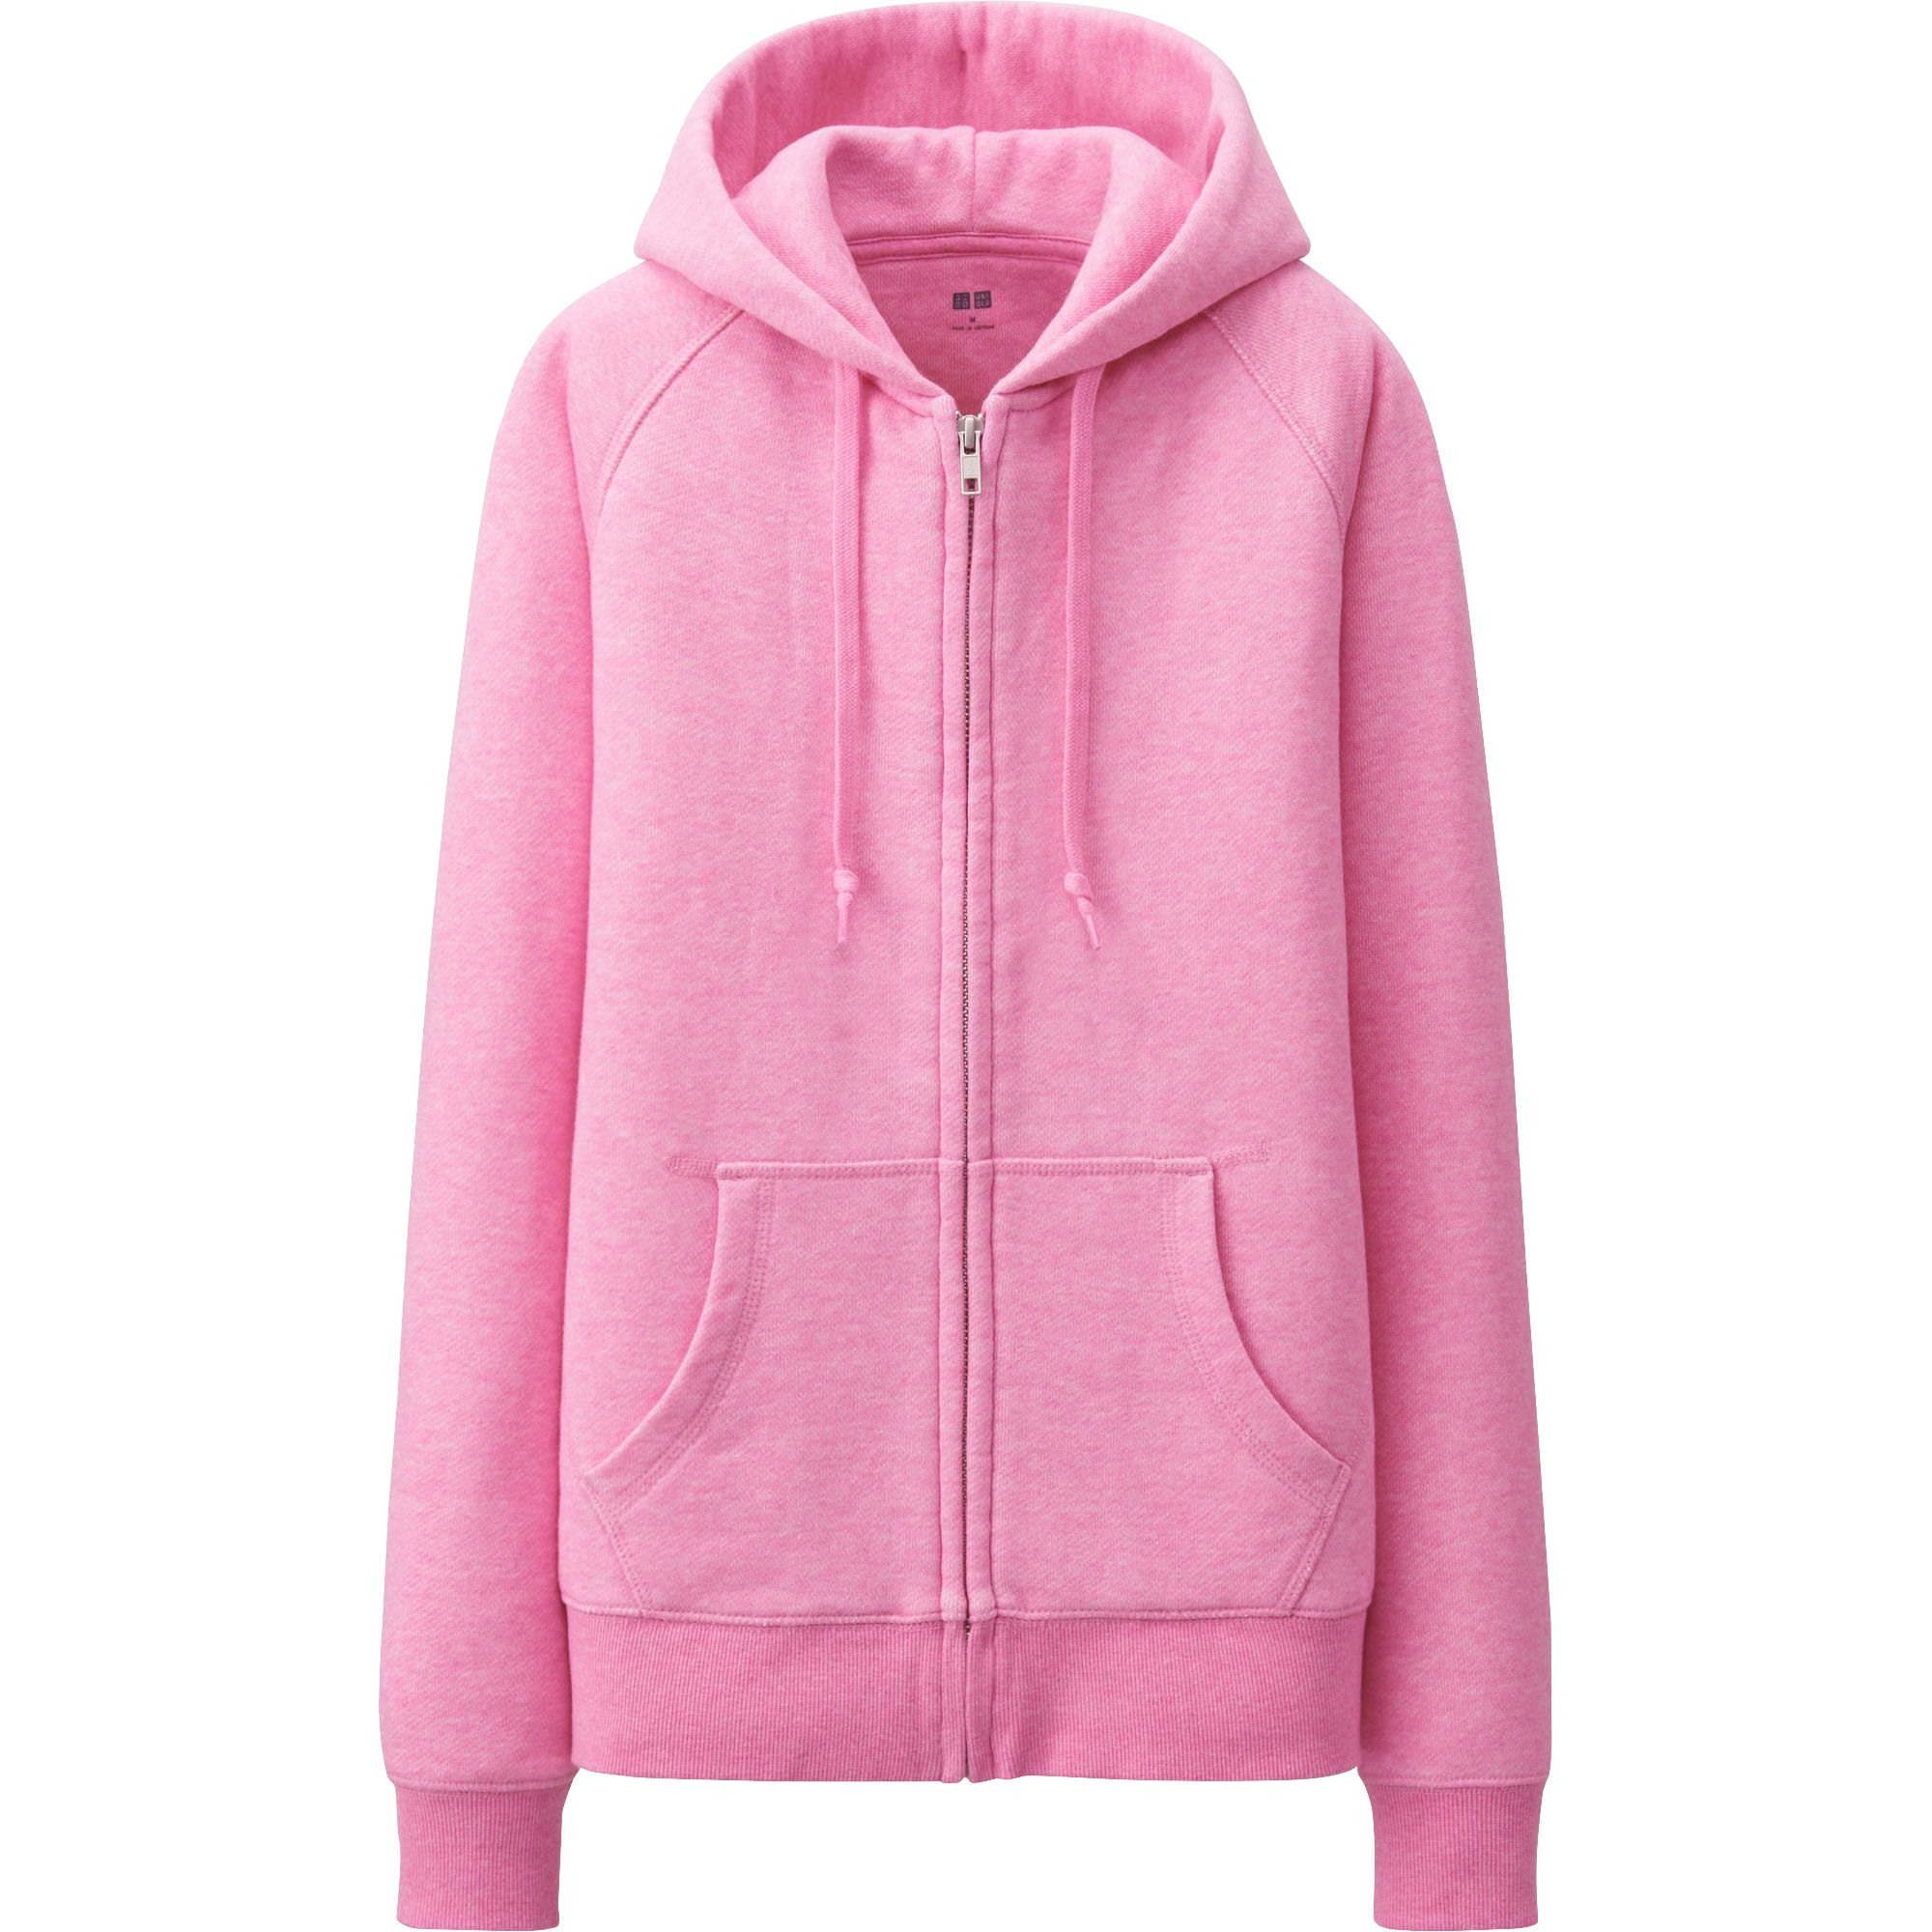 Uniqlo Women Sweat Long Sleeve Full Zip Hooded Jacket In